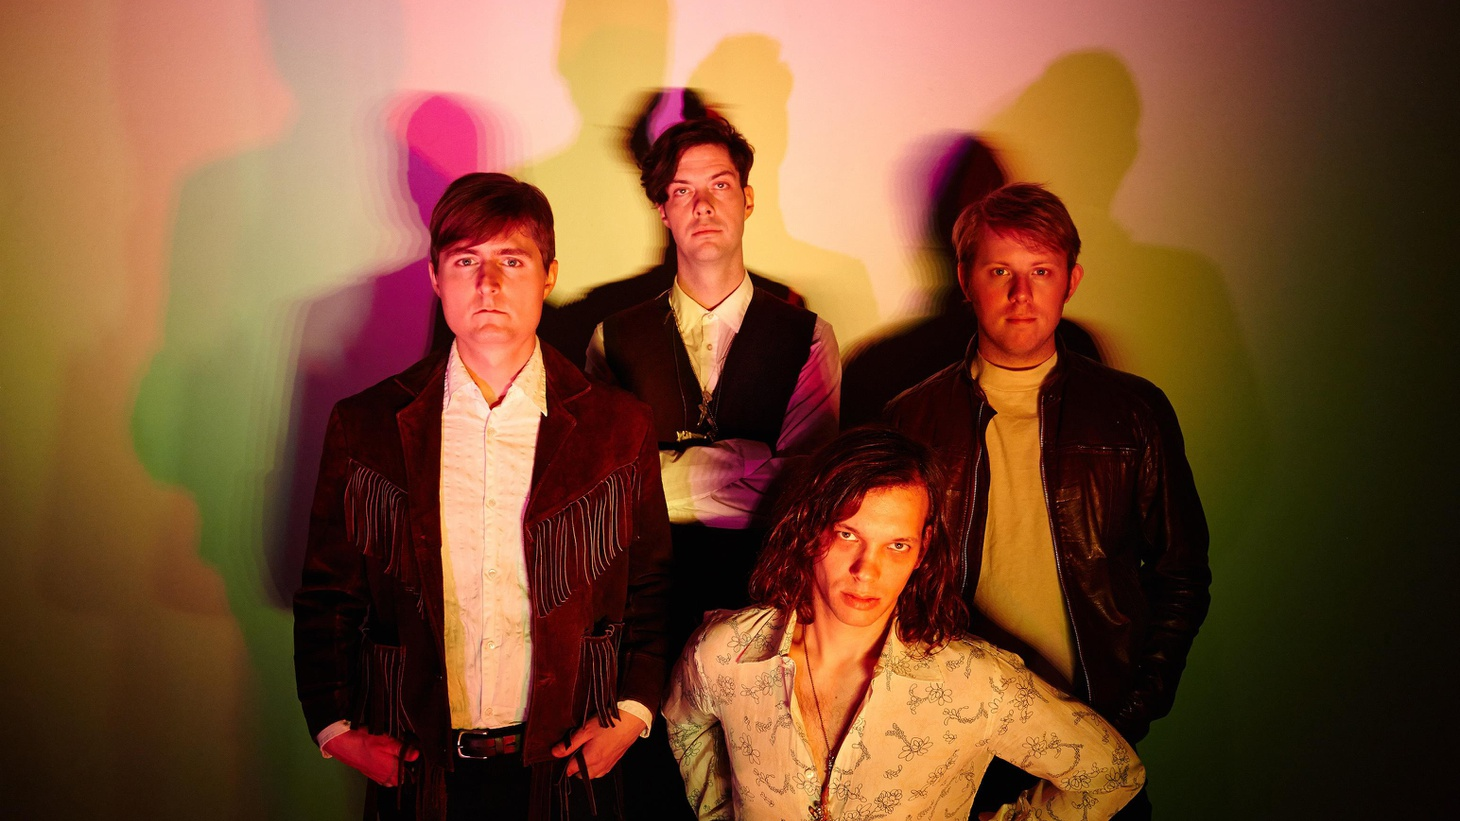 CHAPPO's driving psychedelic pop sound was first heard on an Apple commercial that kick-started their career.